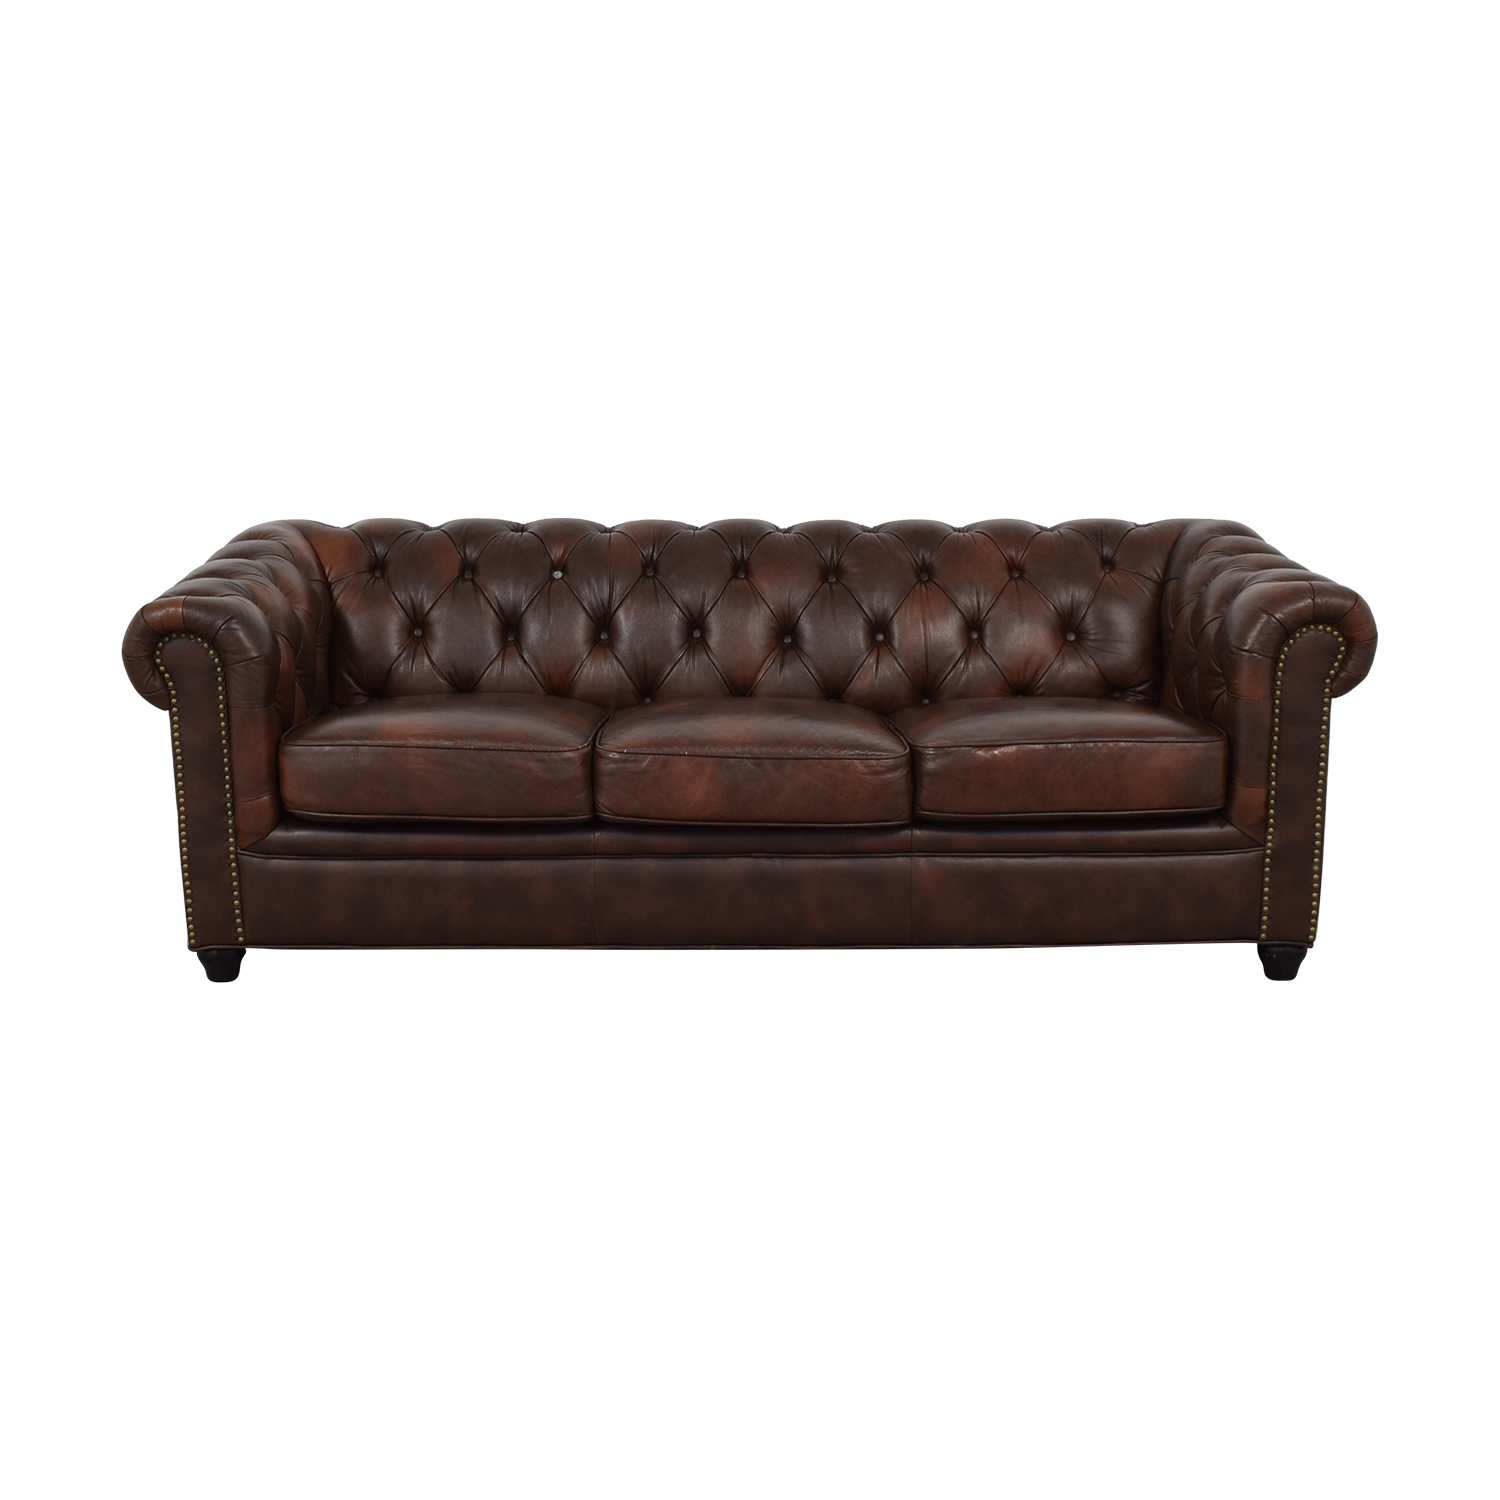 Abbyson Living Abbyson Living Brown Tufted Three-Cushion Sofa discount